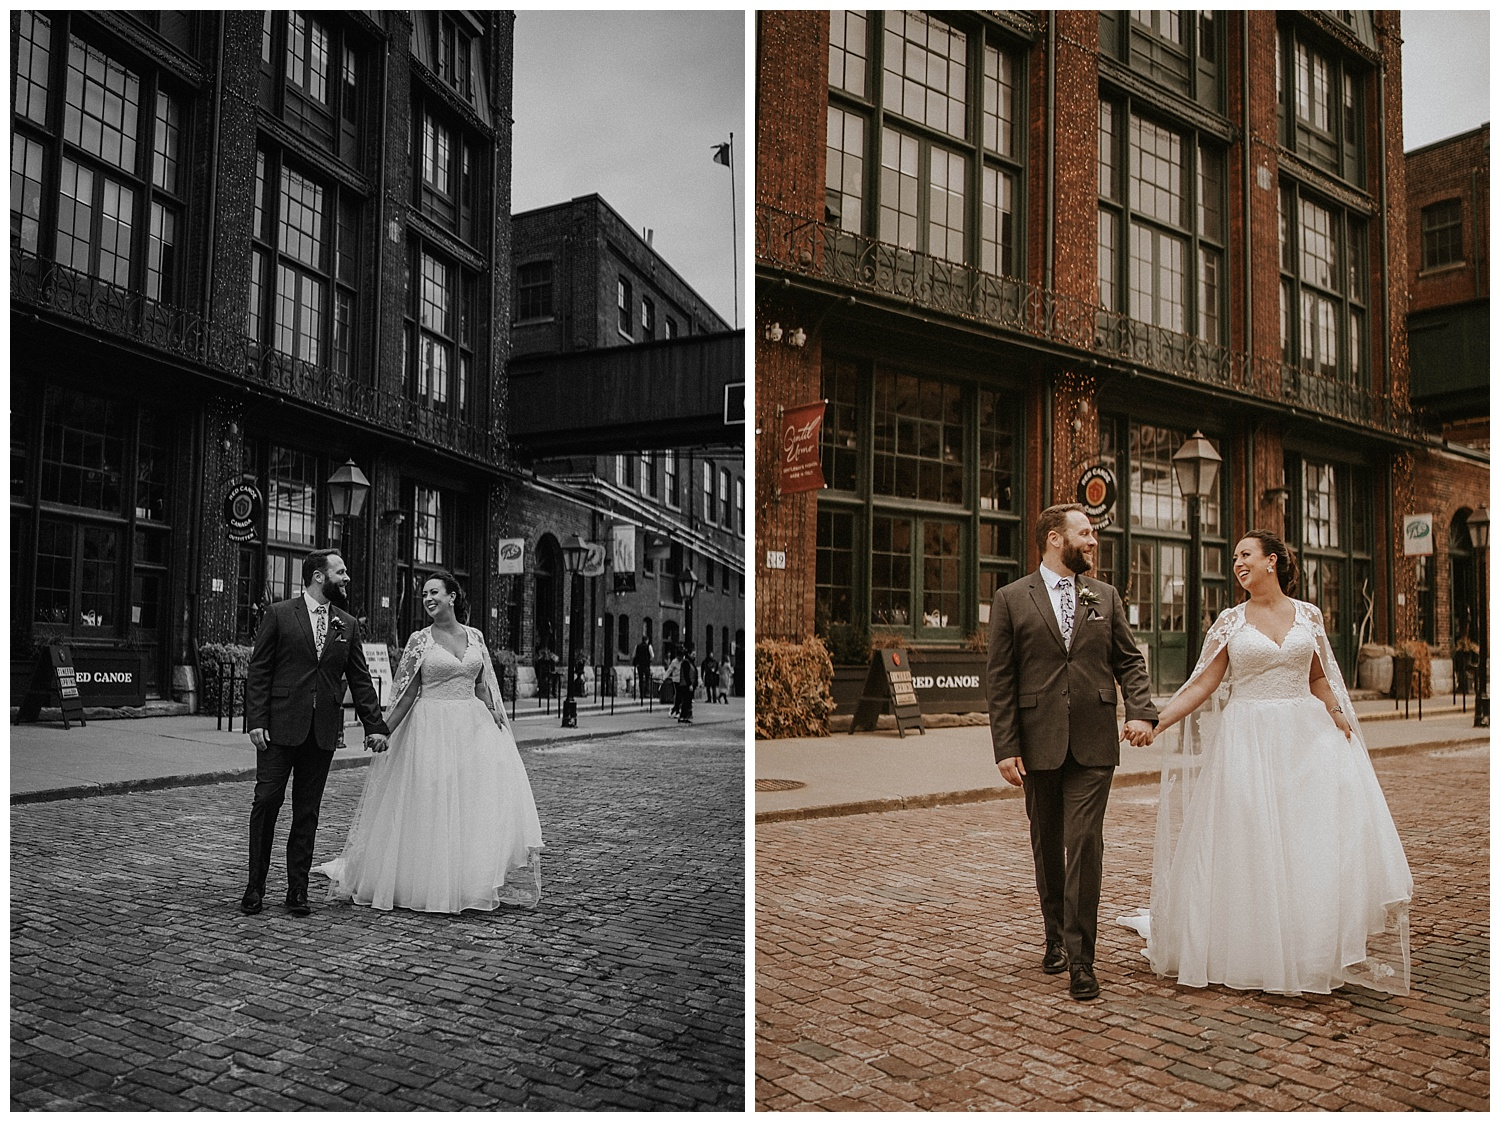 Katie Marie Photography | Archeo Wedding Arta Gallery Wedding | Distillery District Wedding | Toronto Wedding Photographer | Hamilton Toronto Ontario Wedding Photographer |_0078.jpg